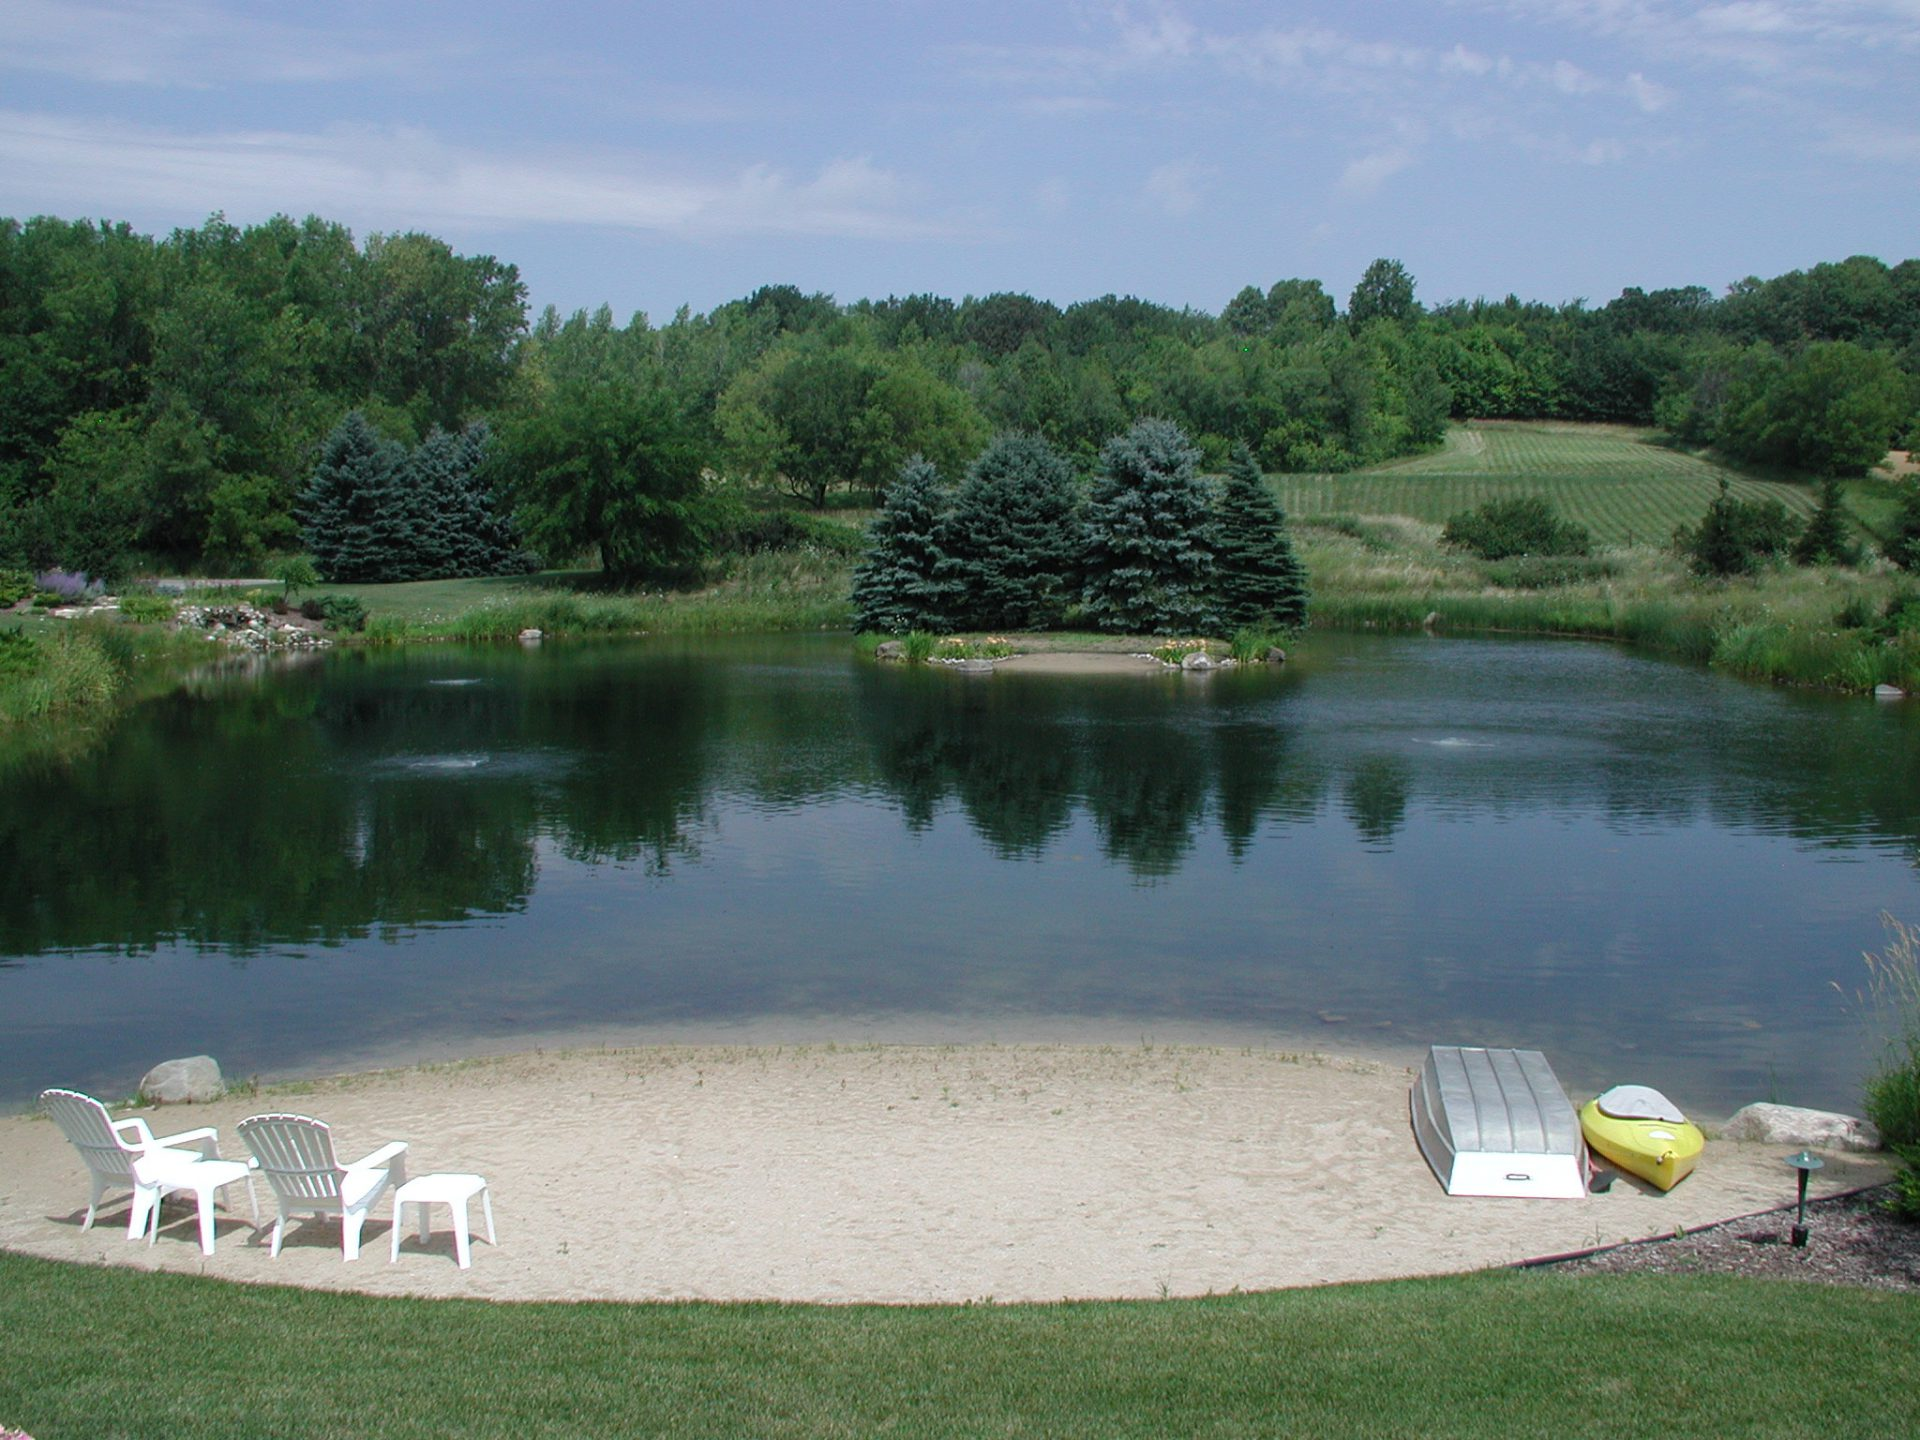 Pond aerators bing images for Building a 1 acre pond